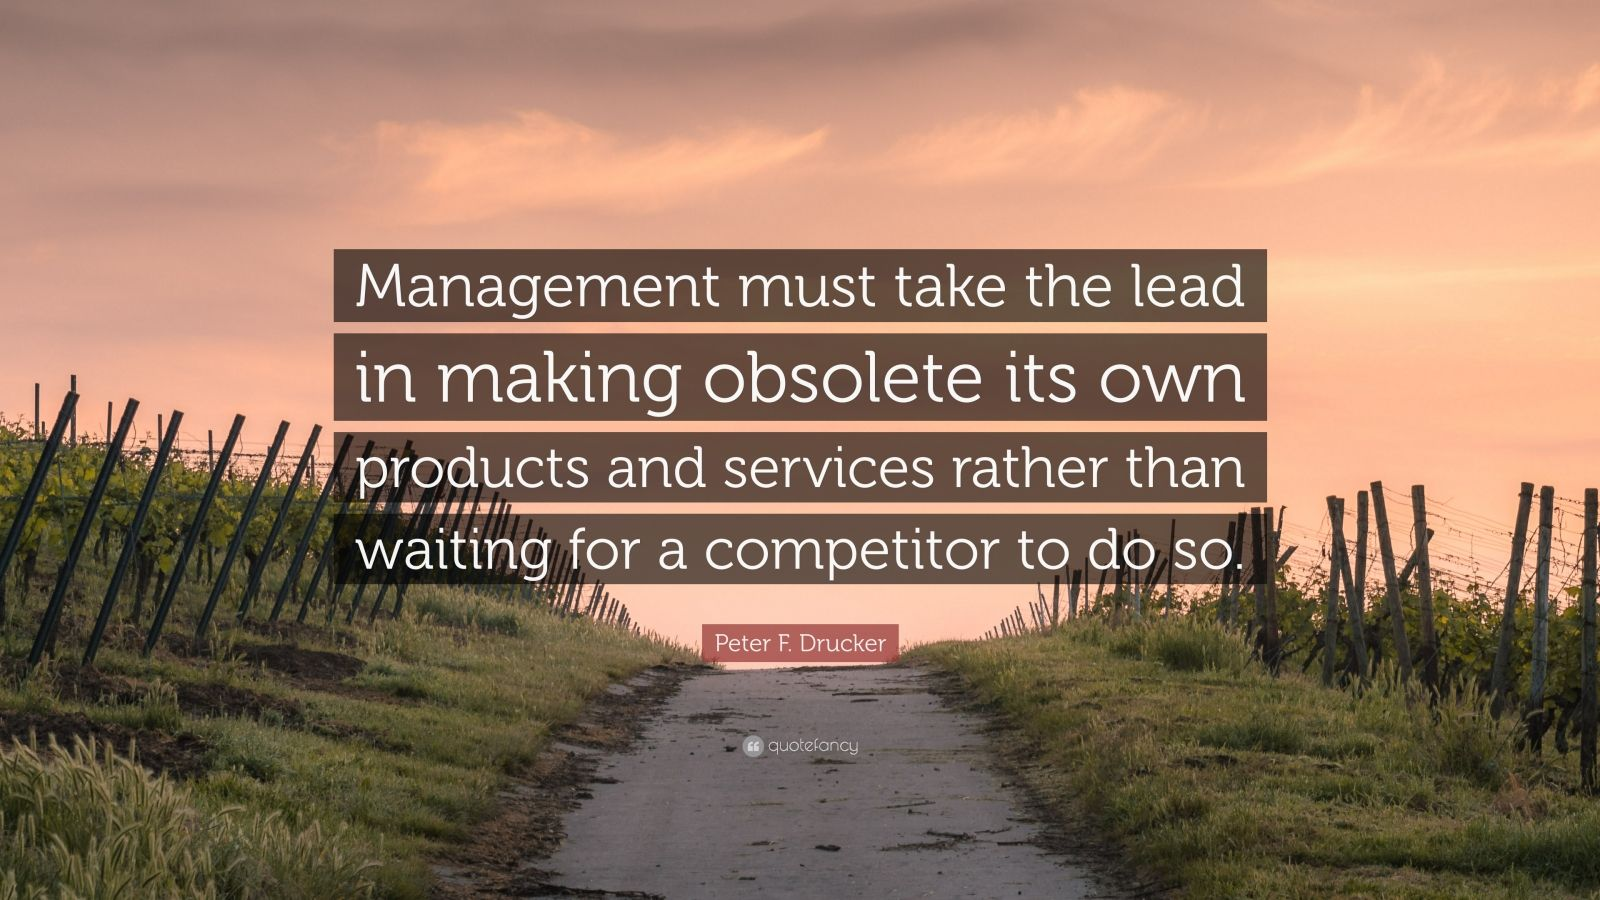 """Peter F. Drucker Quote: """"Management must take the lead in making obsolete its own products and services rather than waiting for a competitor to do so."""""""